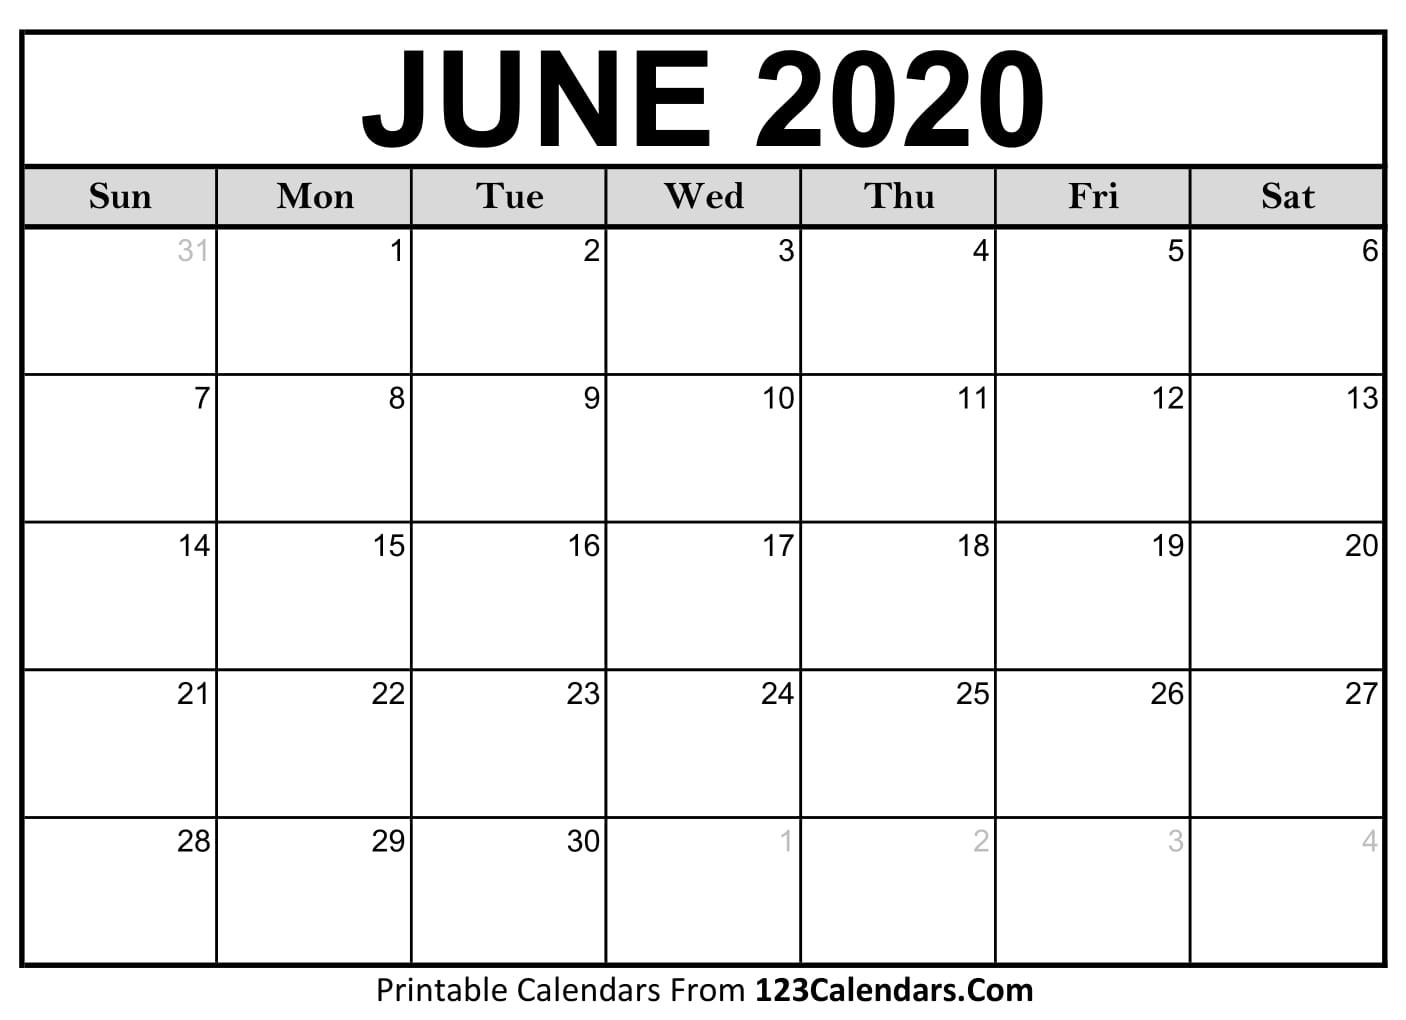 June 2020 Printable Calendar | 123Calendars-Blank June Calendar Template 2020